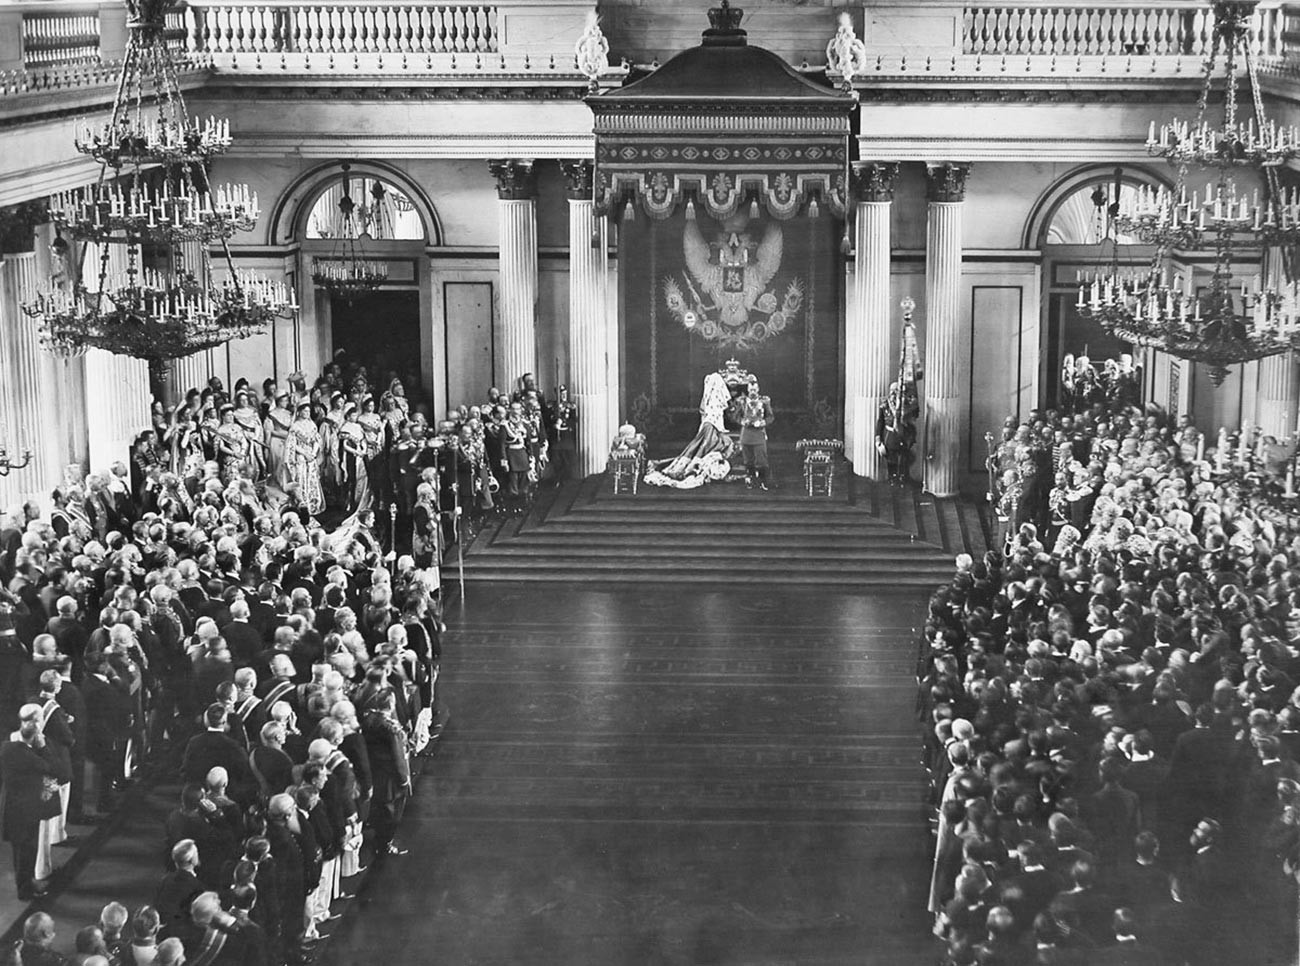 The grand opening of the State Duma and the State Council. The Winter Palace. April 27, 1906.